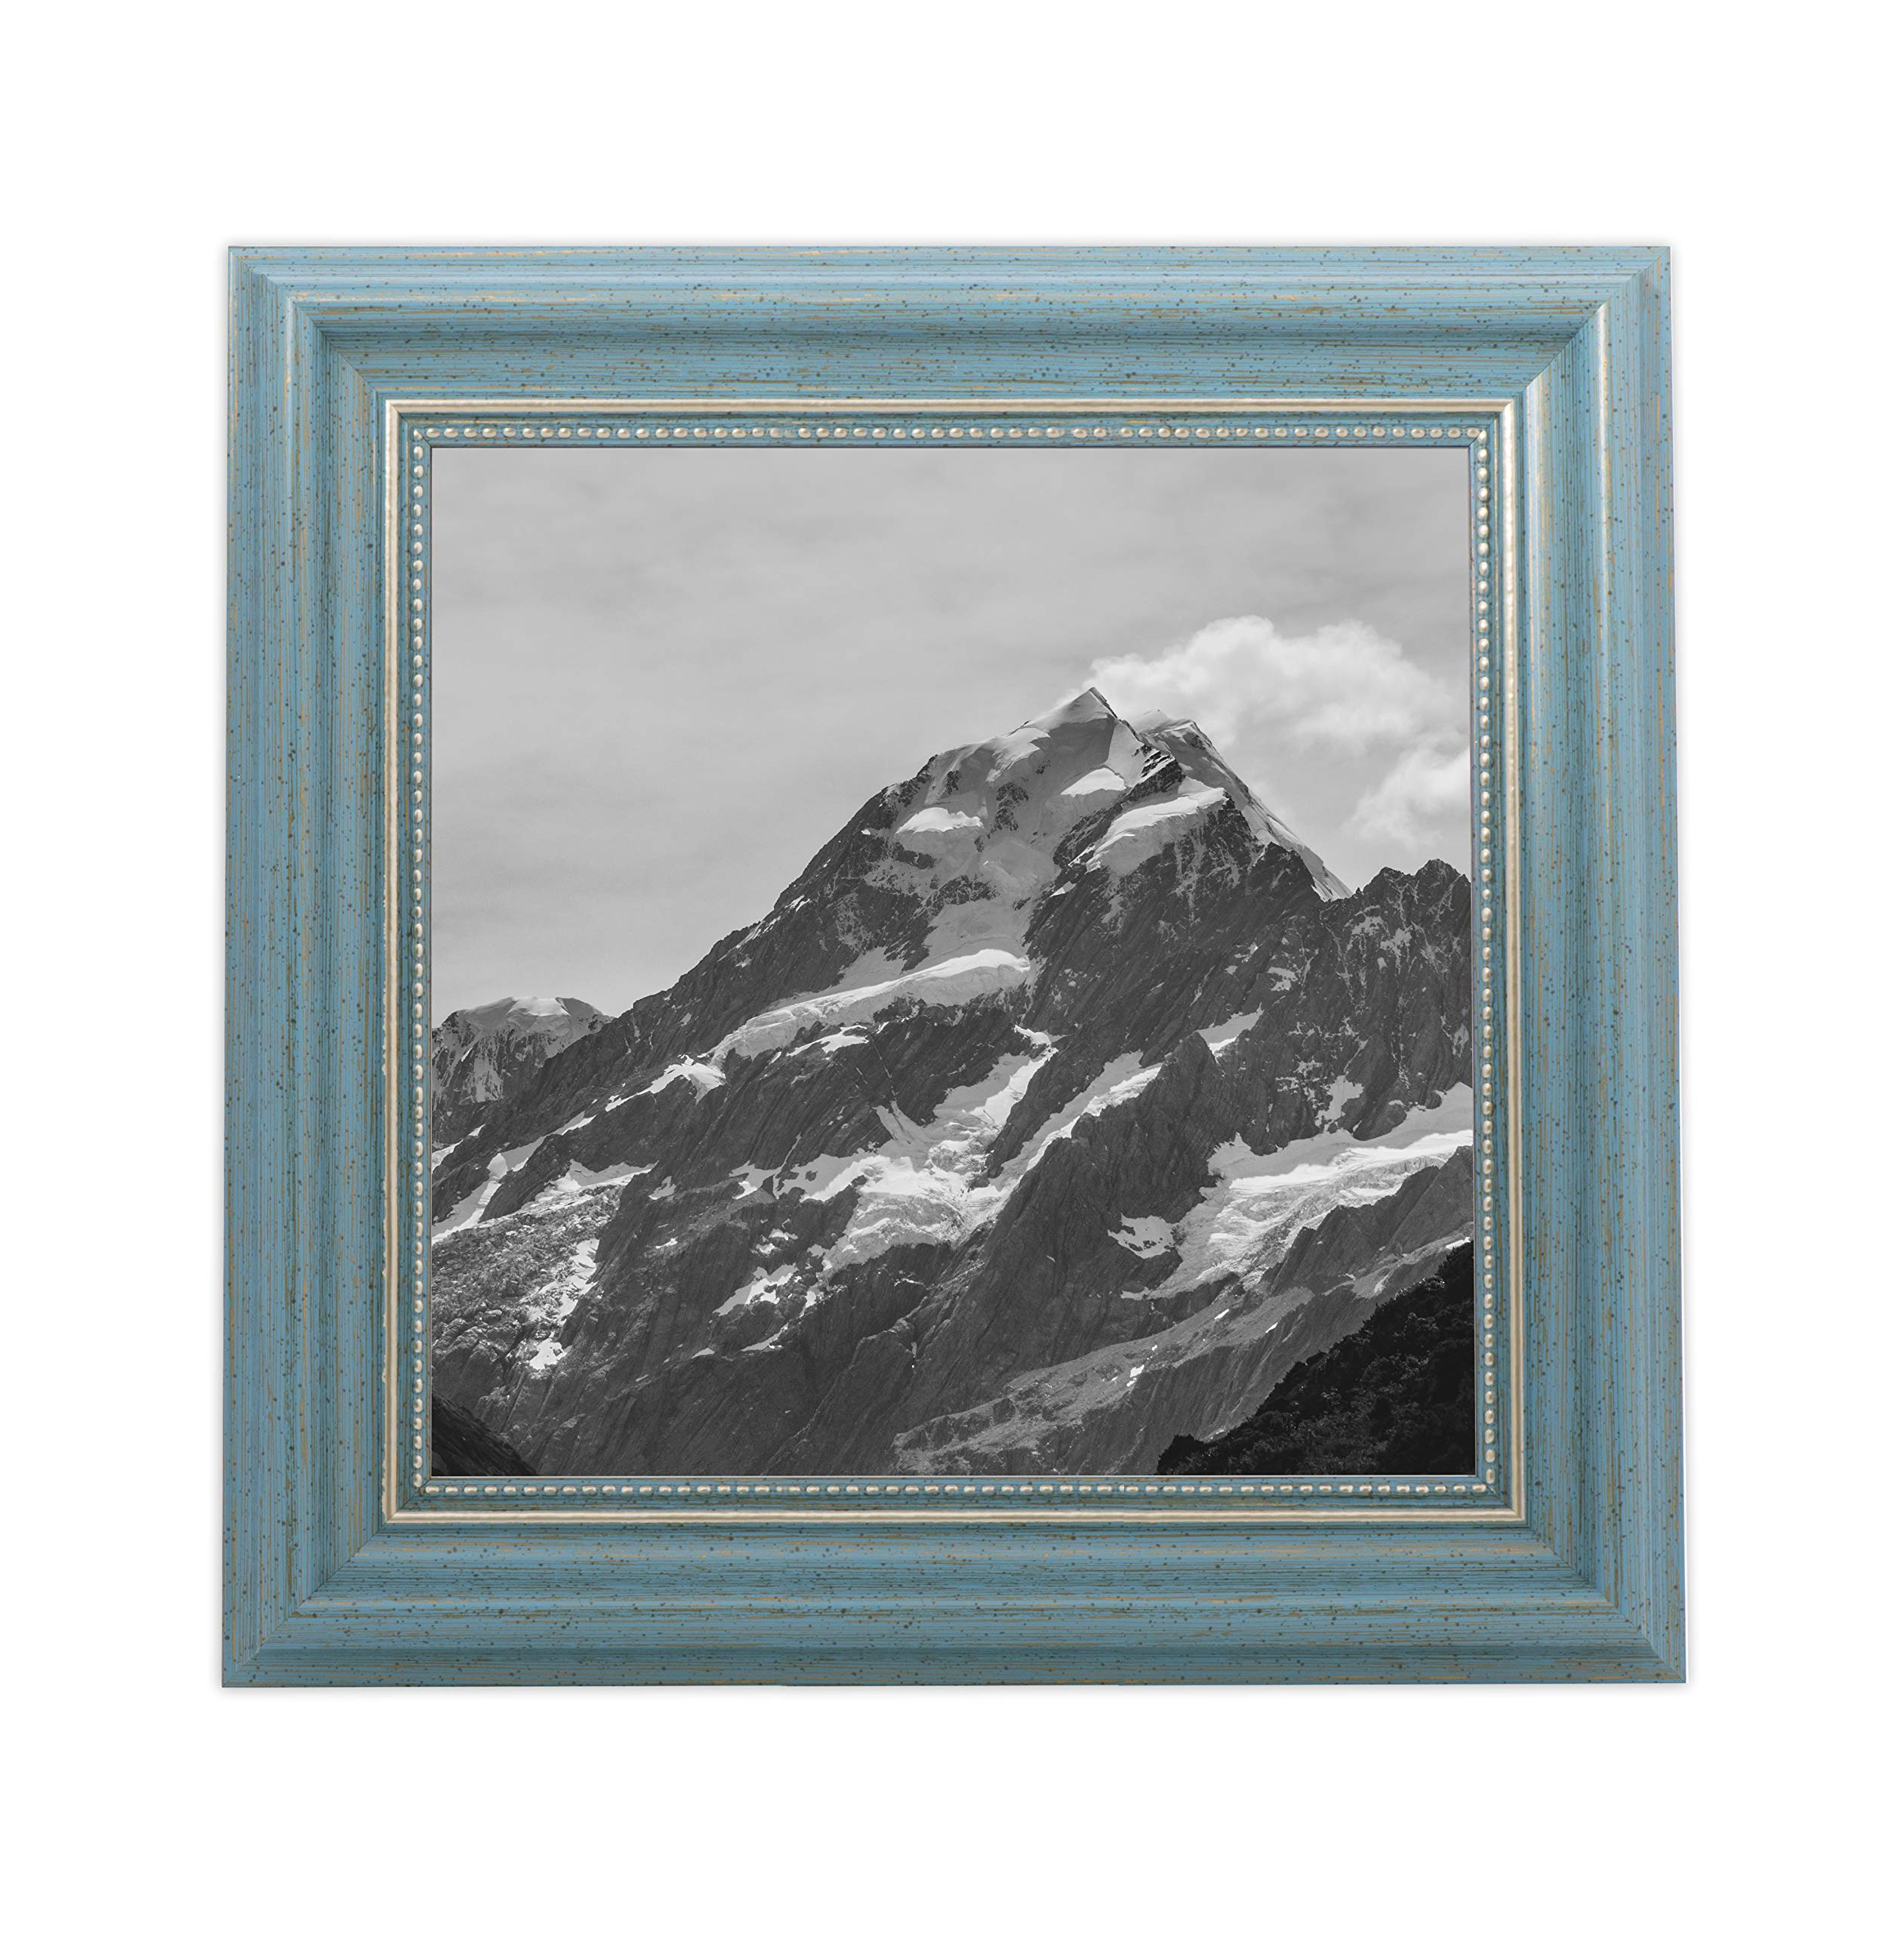 EcoHome 8x8 Picture Frame Teal - Gold Matted for 4x4 Pictures & 8x8 Pictures Without mat - Hanging Kit Included